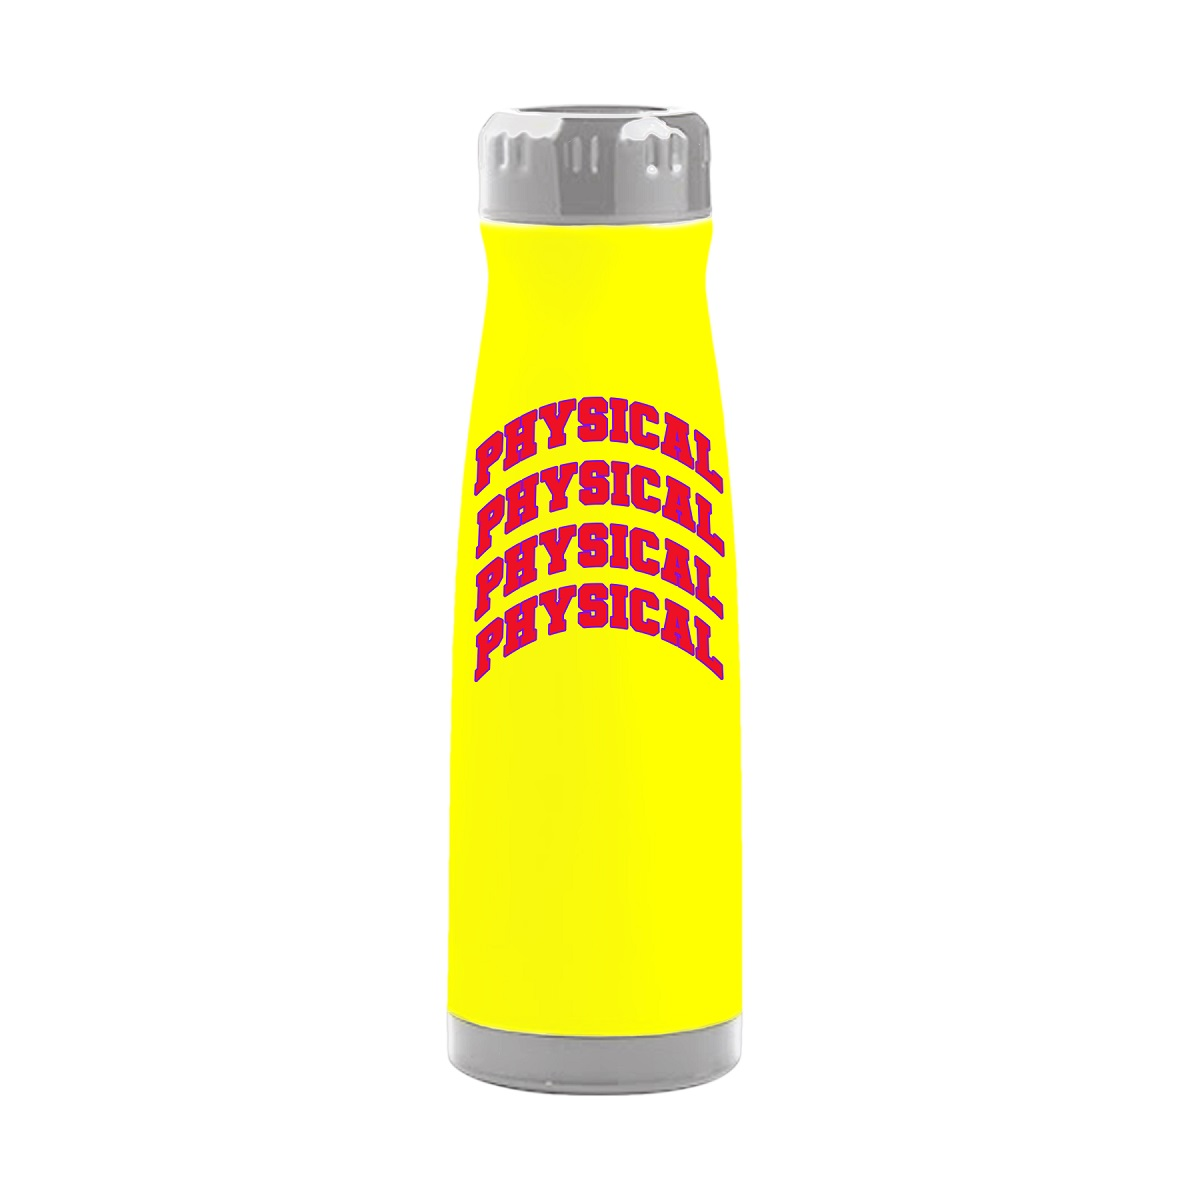 PHYSICAL WATER BOTTLE